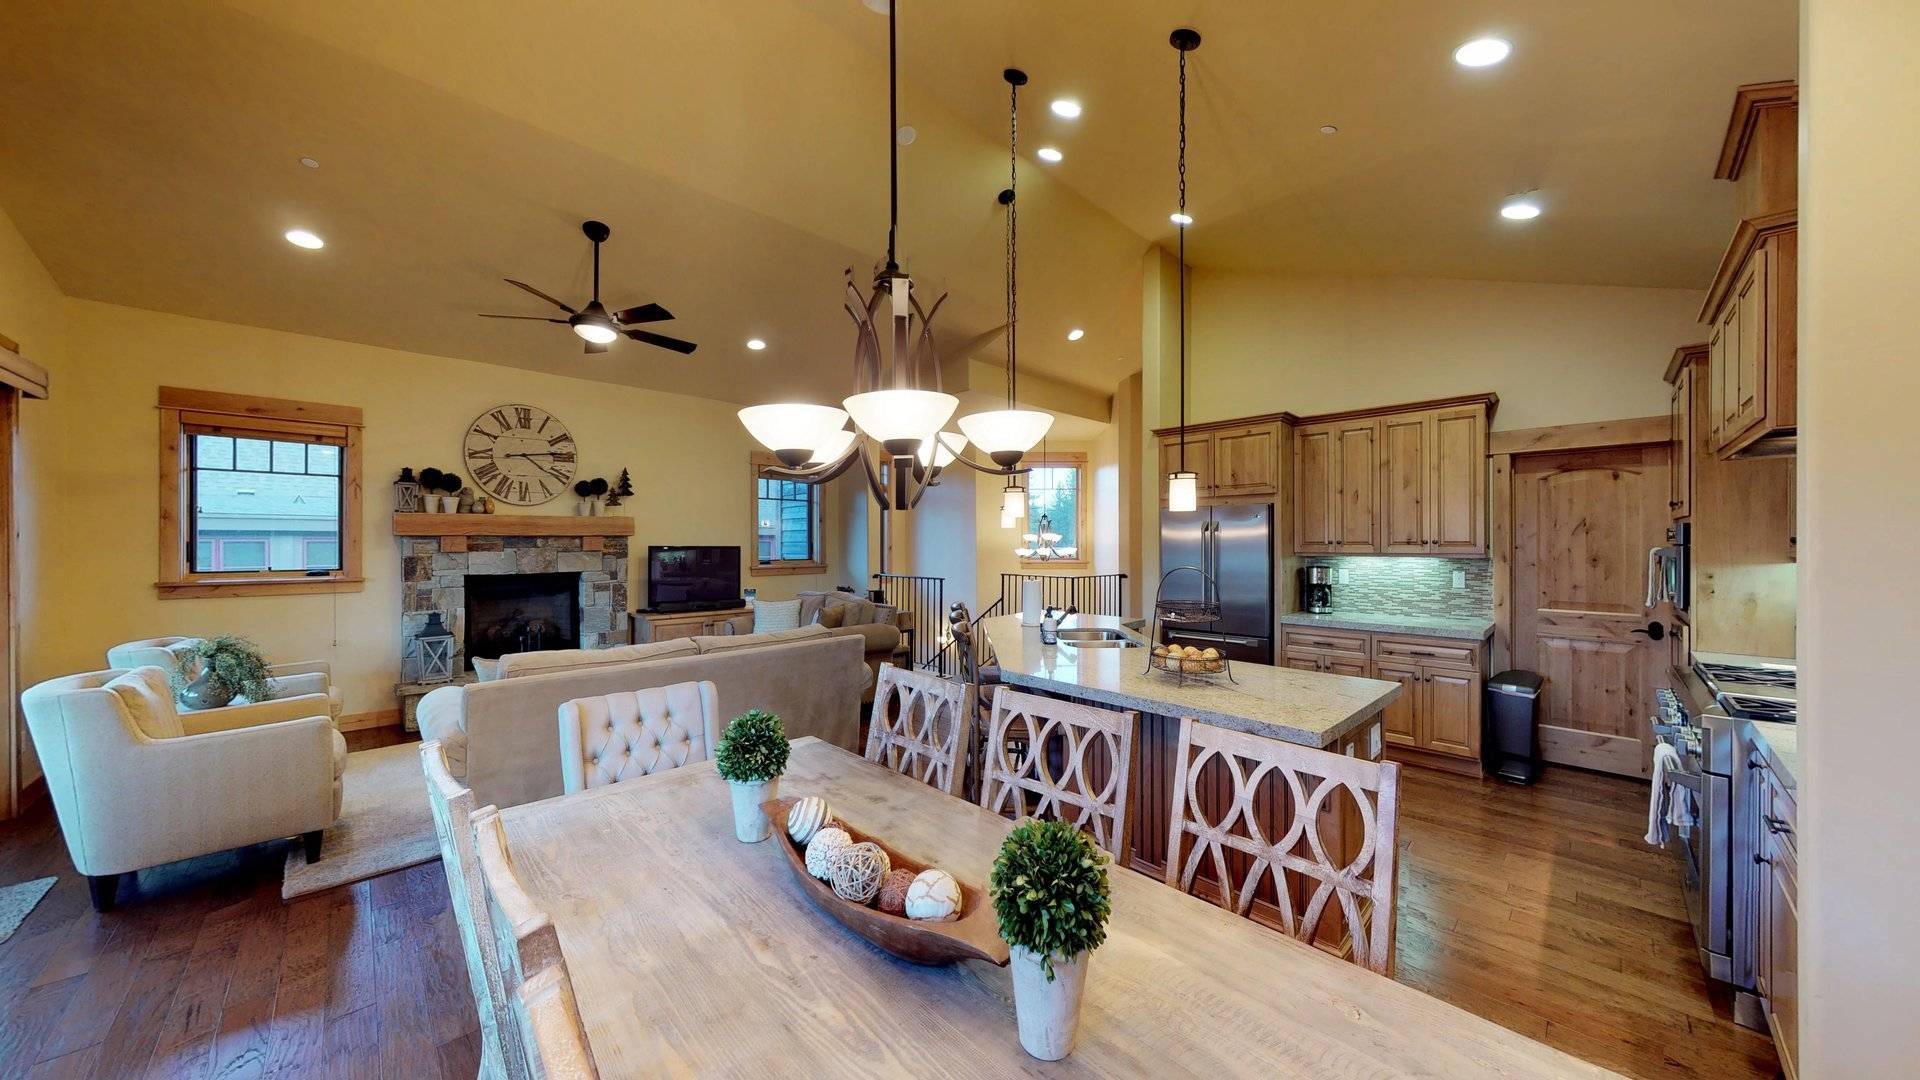 Large Wooden Dining Table and Chairs in Vacation Rental in Truckee CA.